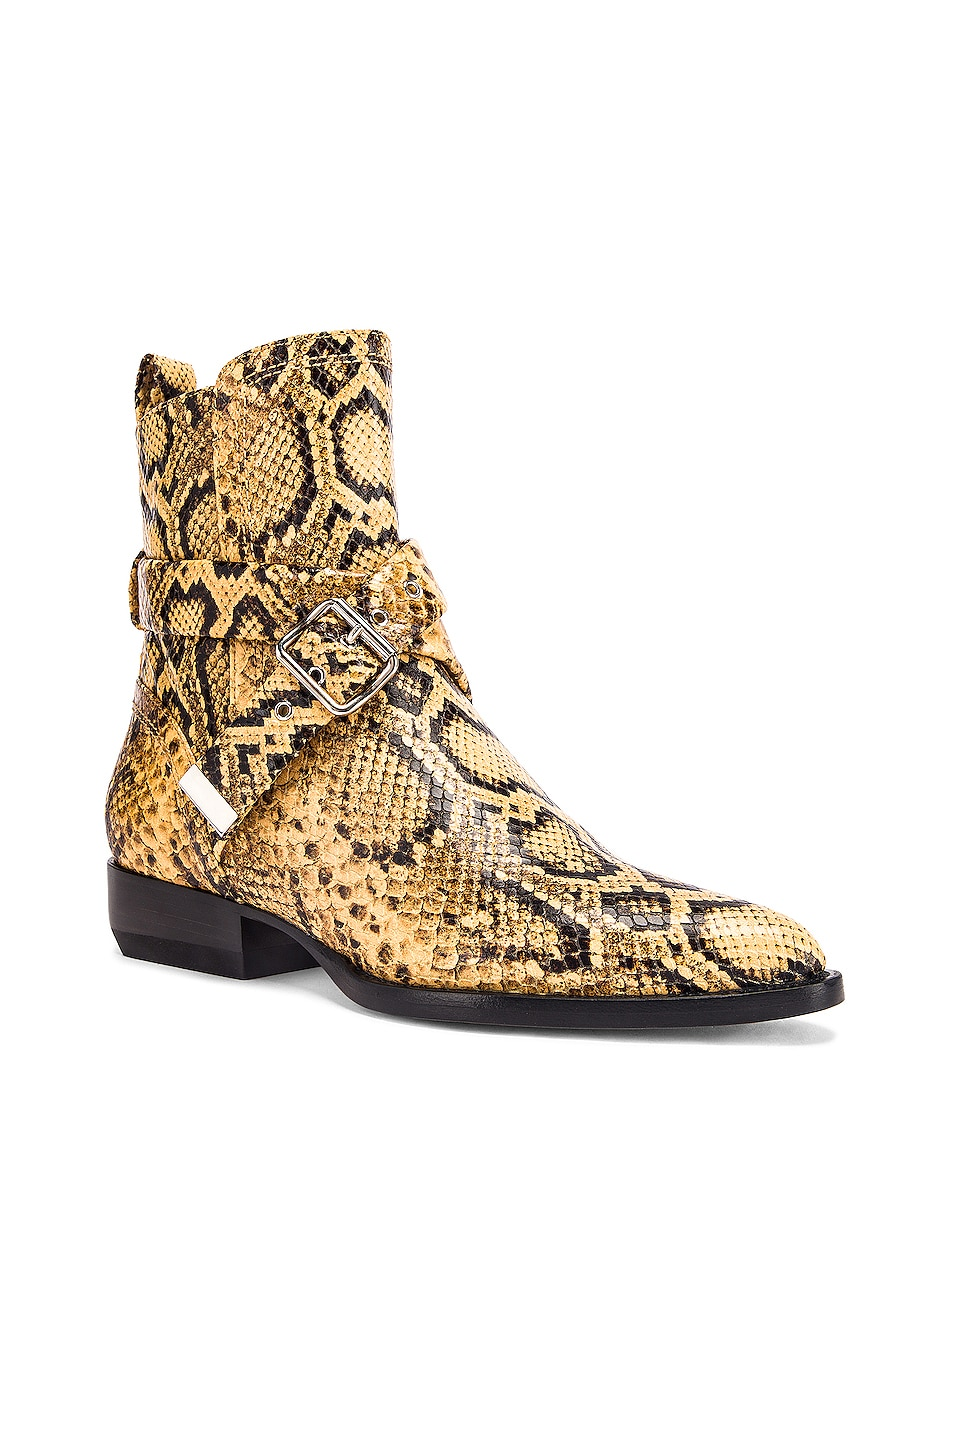 Image 2 of Chloe Python Print Rylee Boots in Wheat Yellow